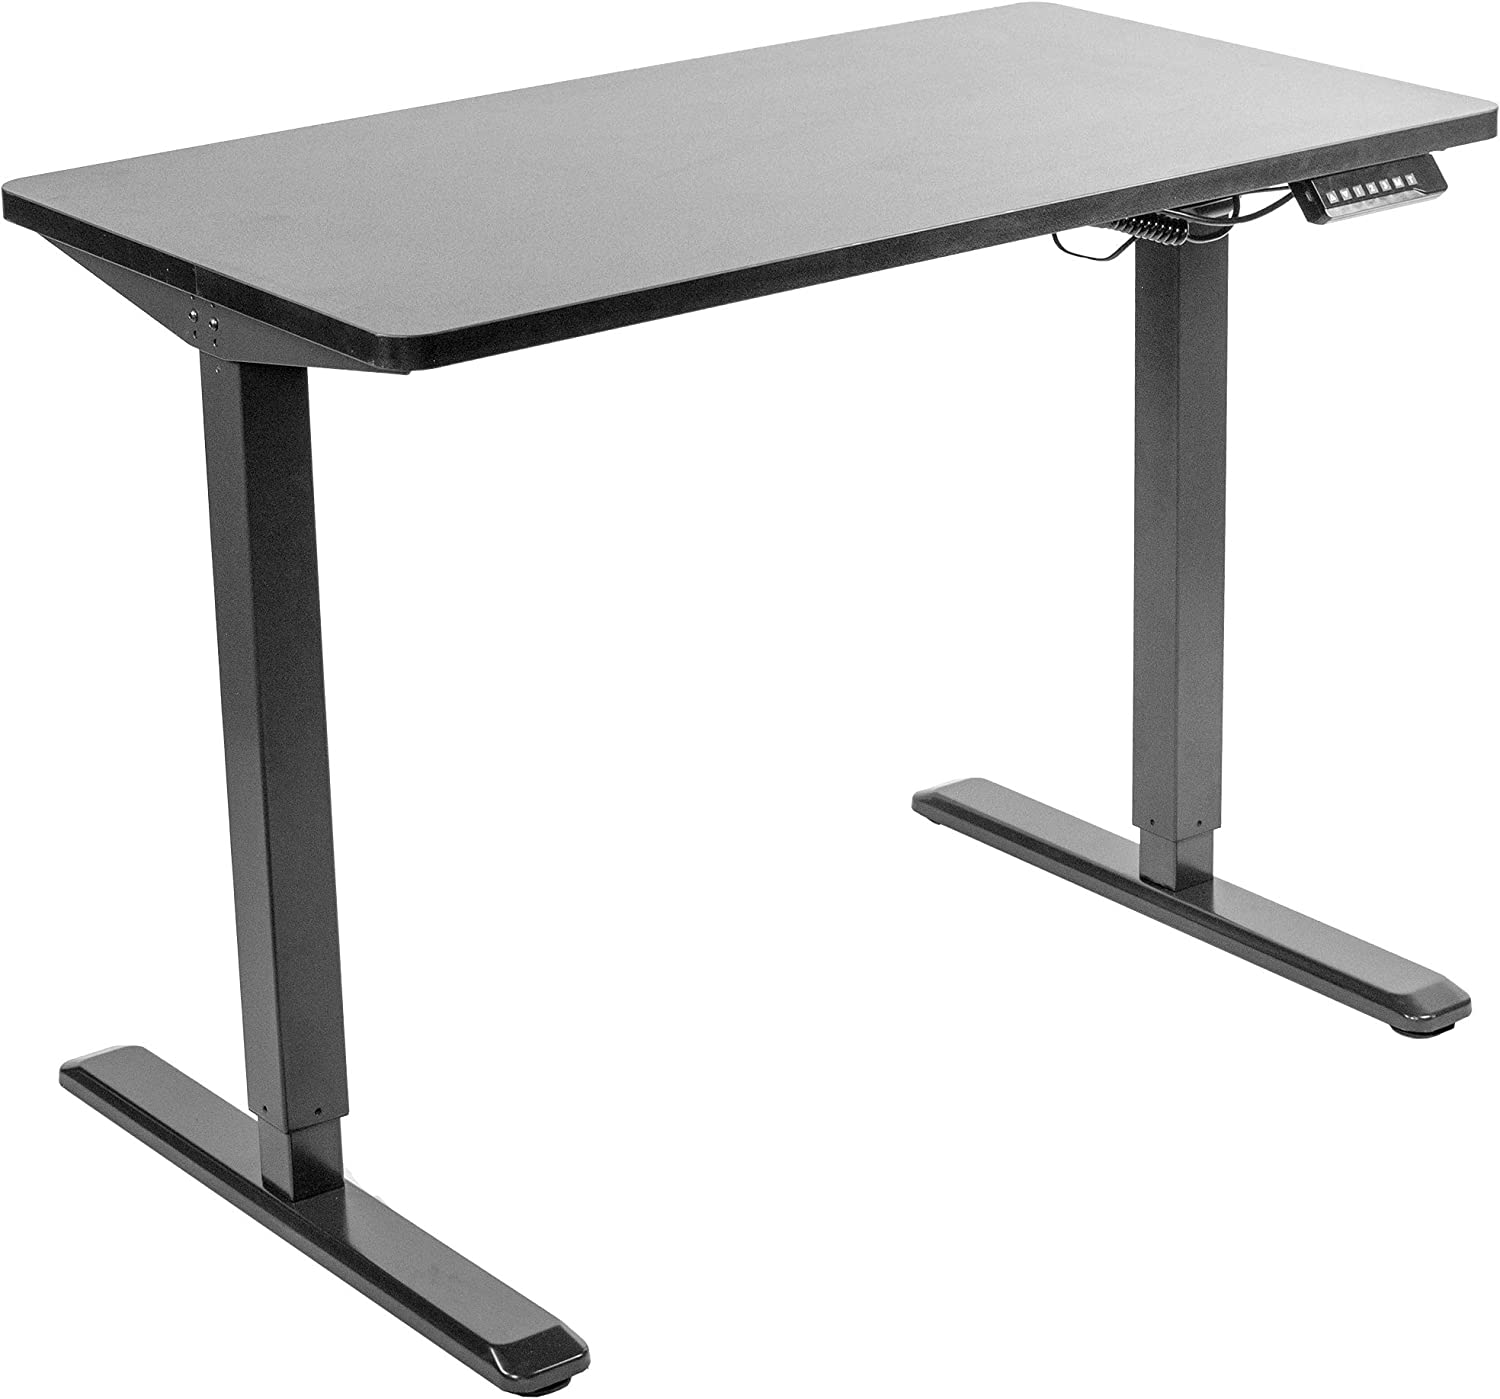 VIVO Electric 43 x 24 inch Stand Up Desk, Black Solid One-Piece Table Top, Black Frame, Height Adjustable Standing Workstation with Memory Preset Controller (DESK-KIT-1B4B)